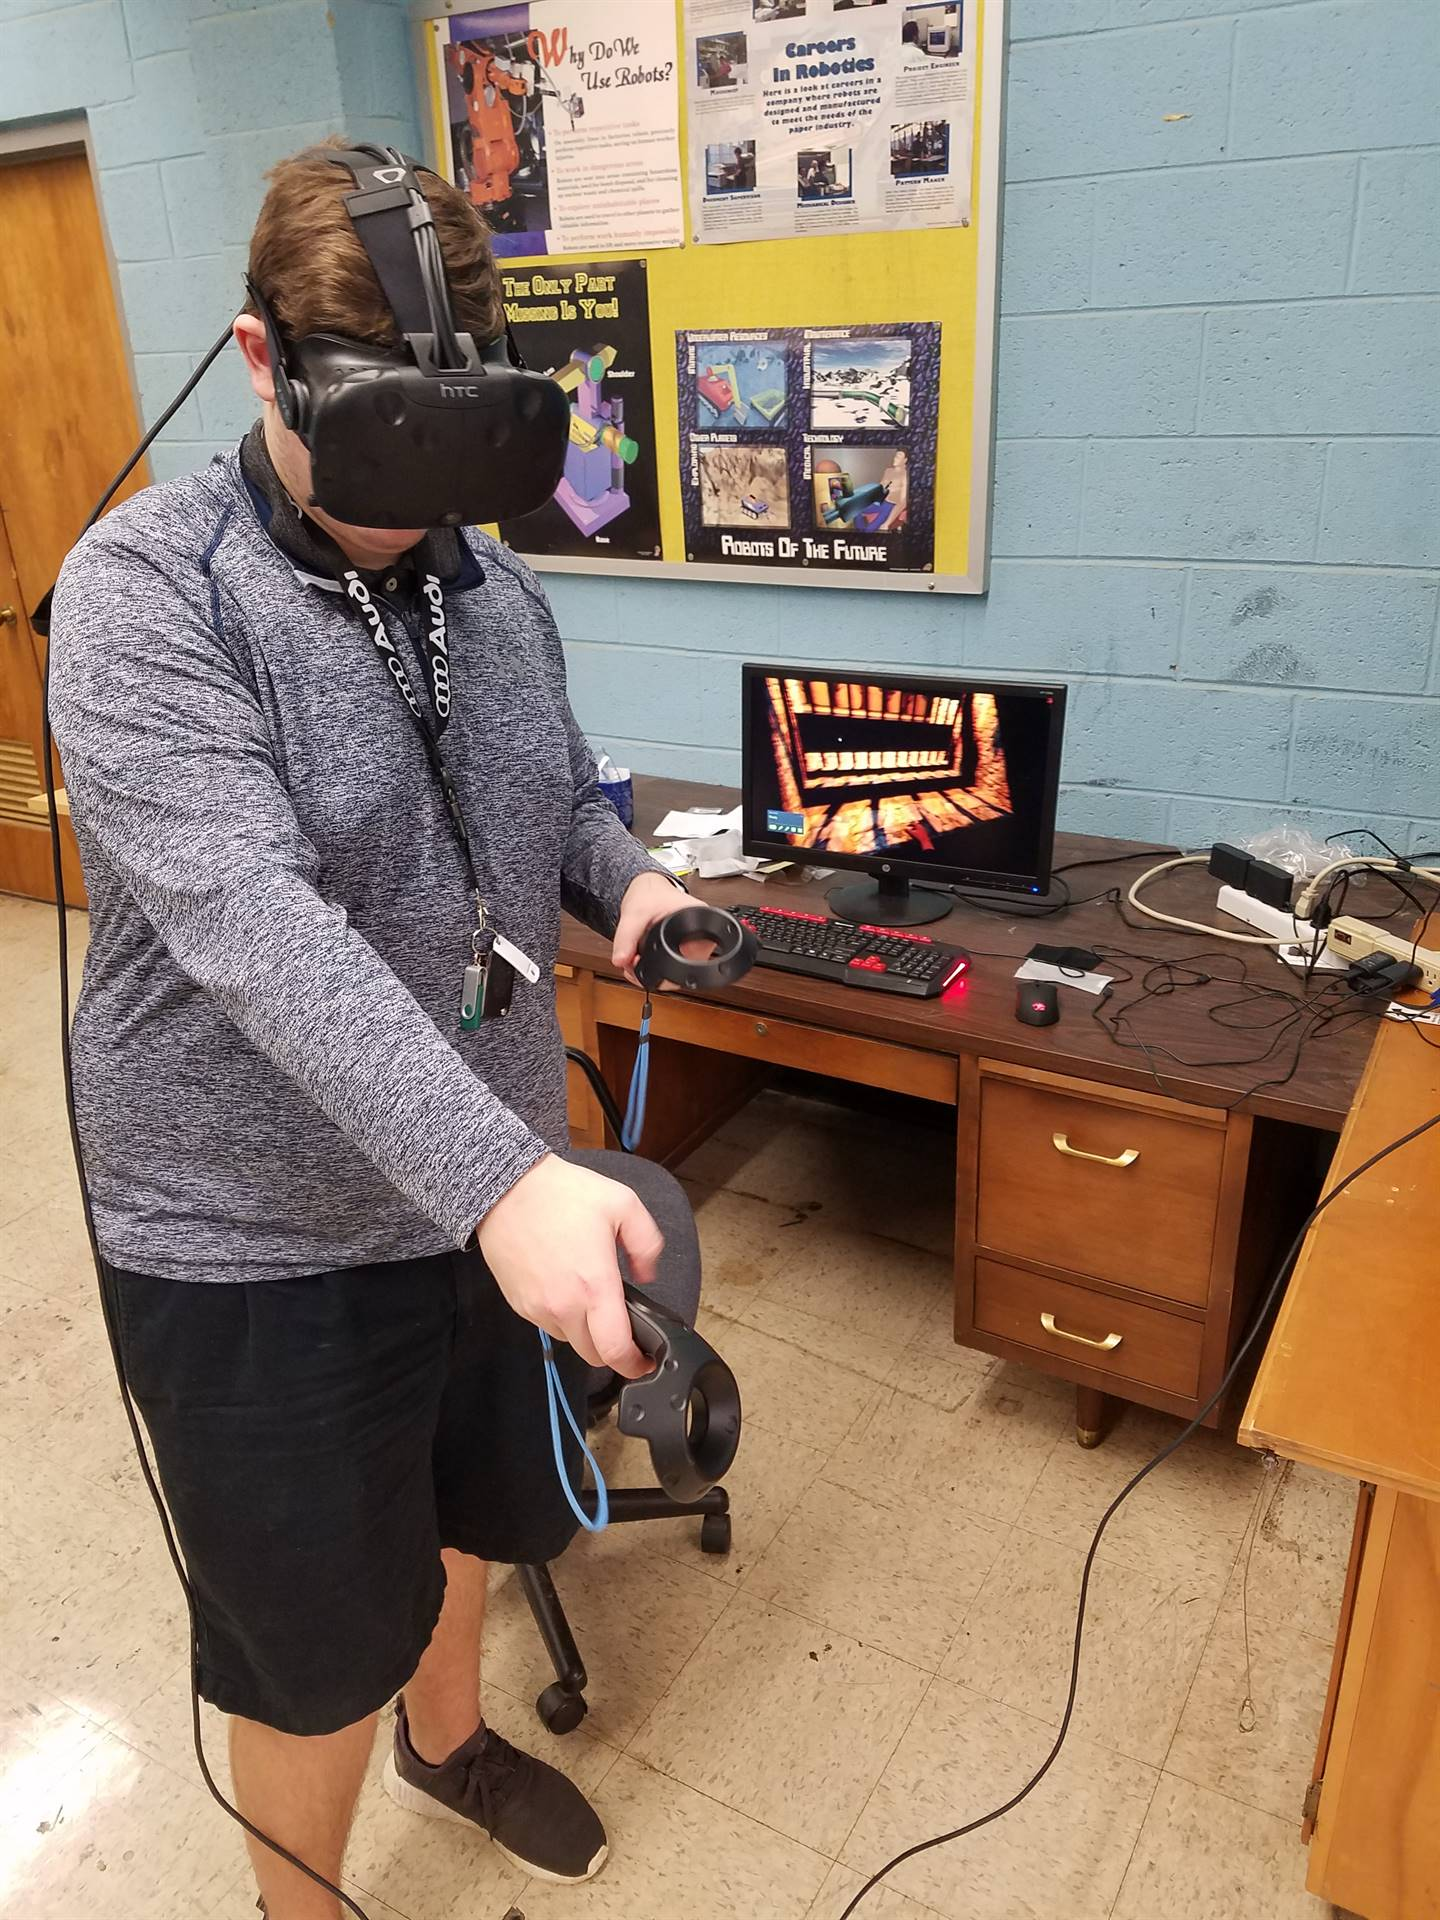 Trying out the VR